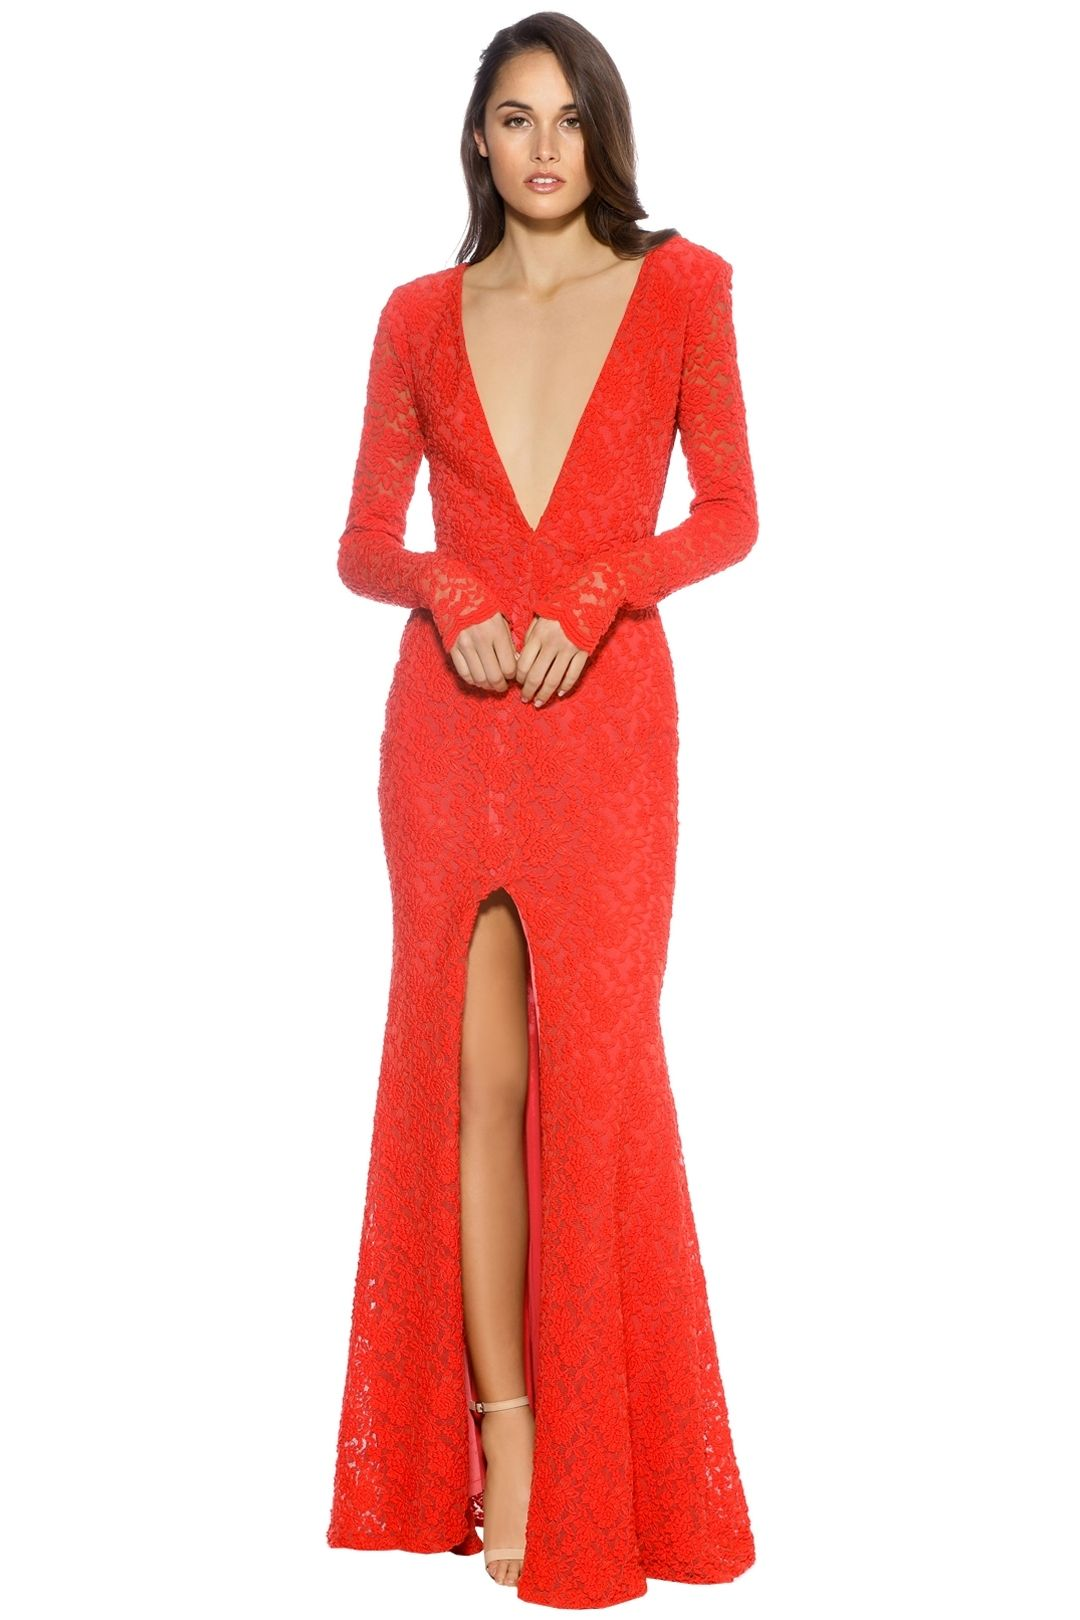 Ae'lkemi - V Plunge Red Long Sleeve Gown - Red - Front